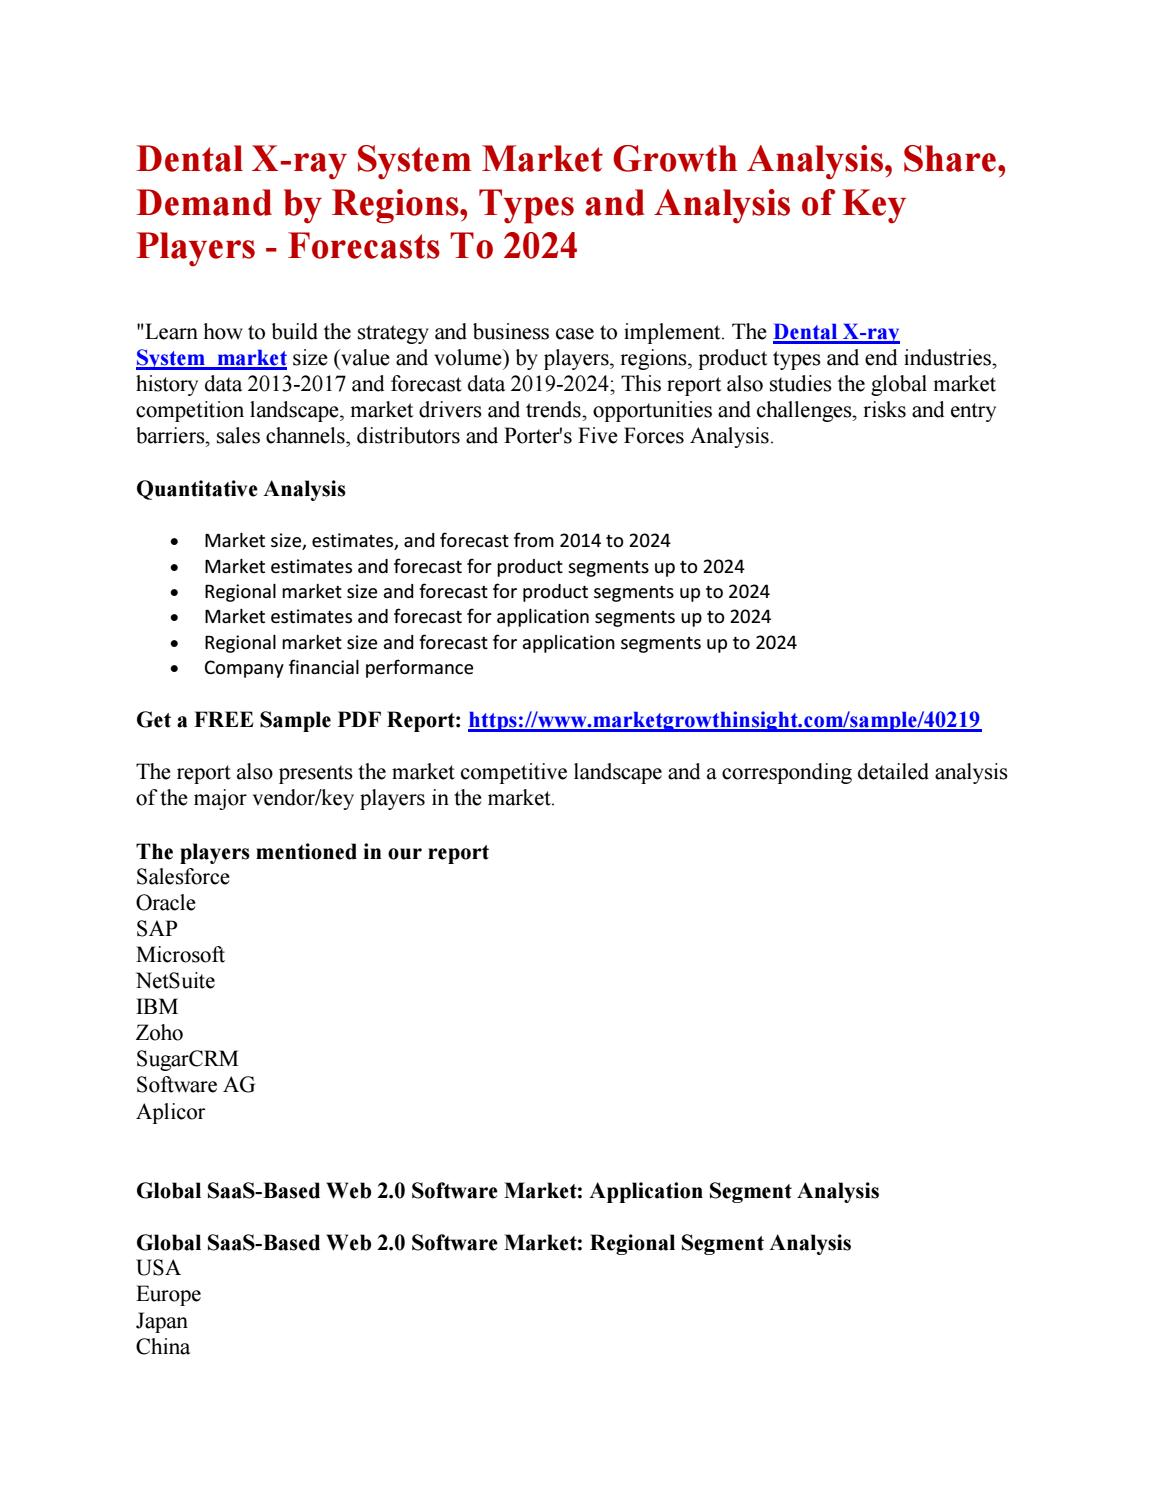 Dental X-ray System Market Growth Analysis, Share, Demand by Regions